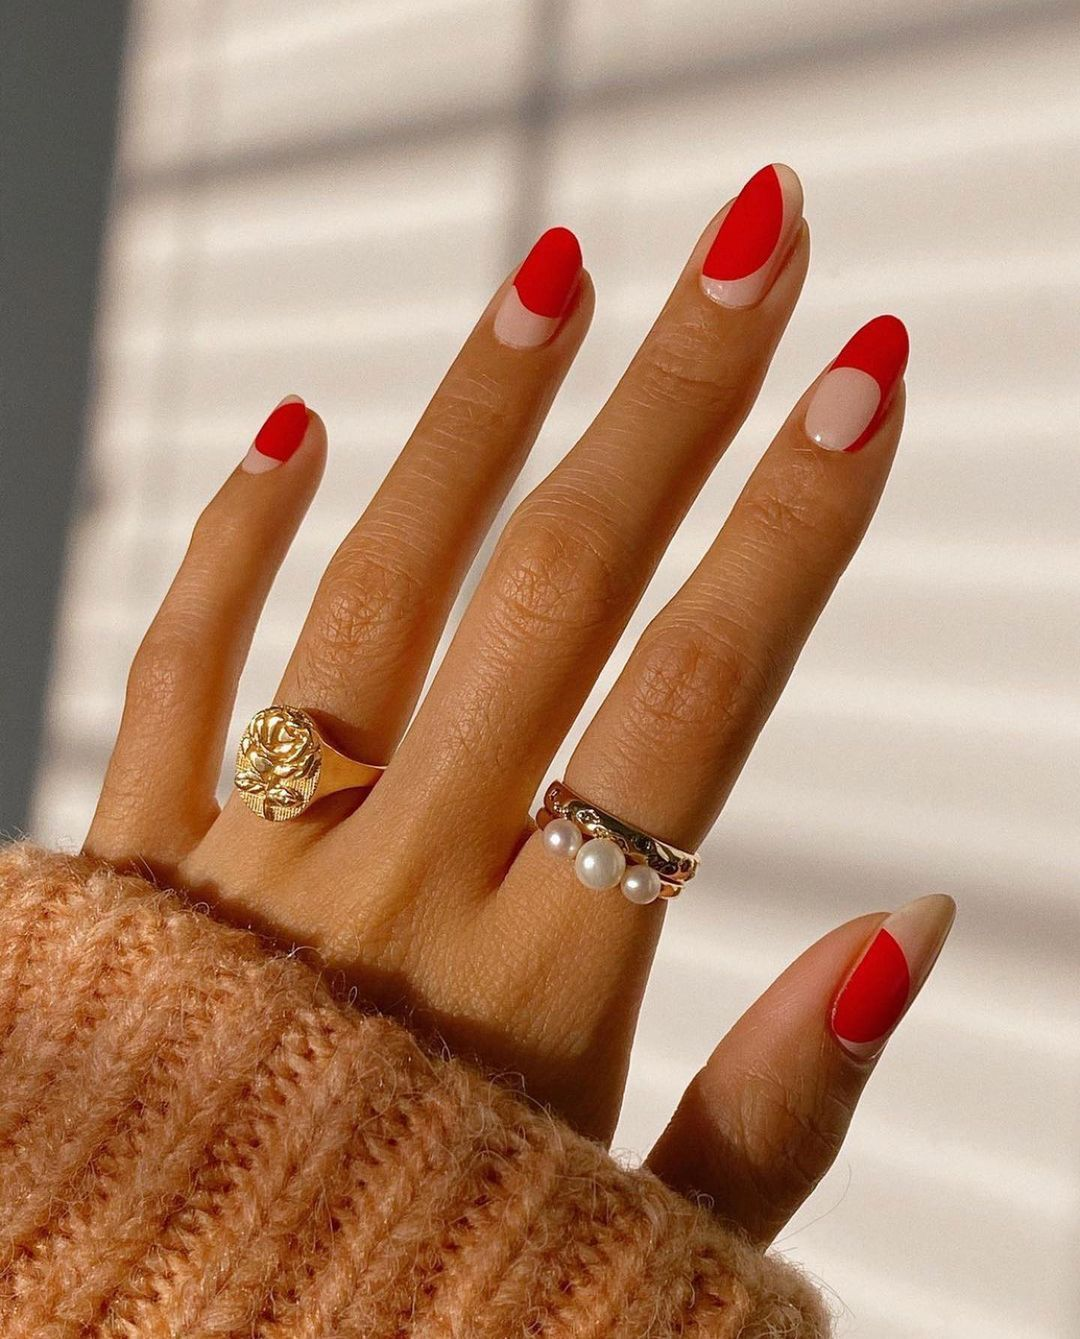 9 626 Curtidas 80 Comentarios Allure Magazine Allure No Instagram A Different Take On Holiday Red Nails But With Nega In 2021 Funky Nails Nail Inspo Chic Nails